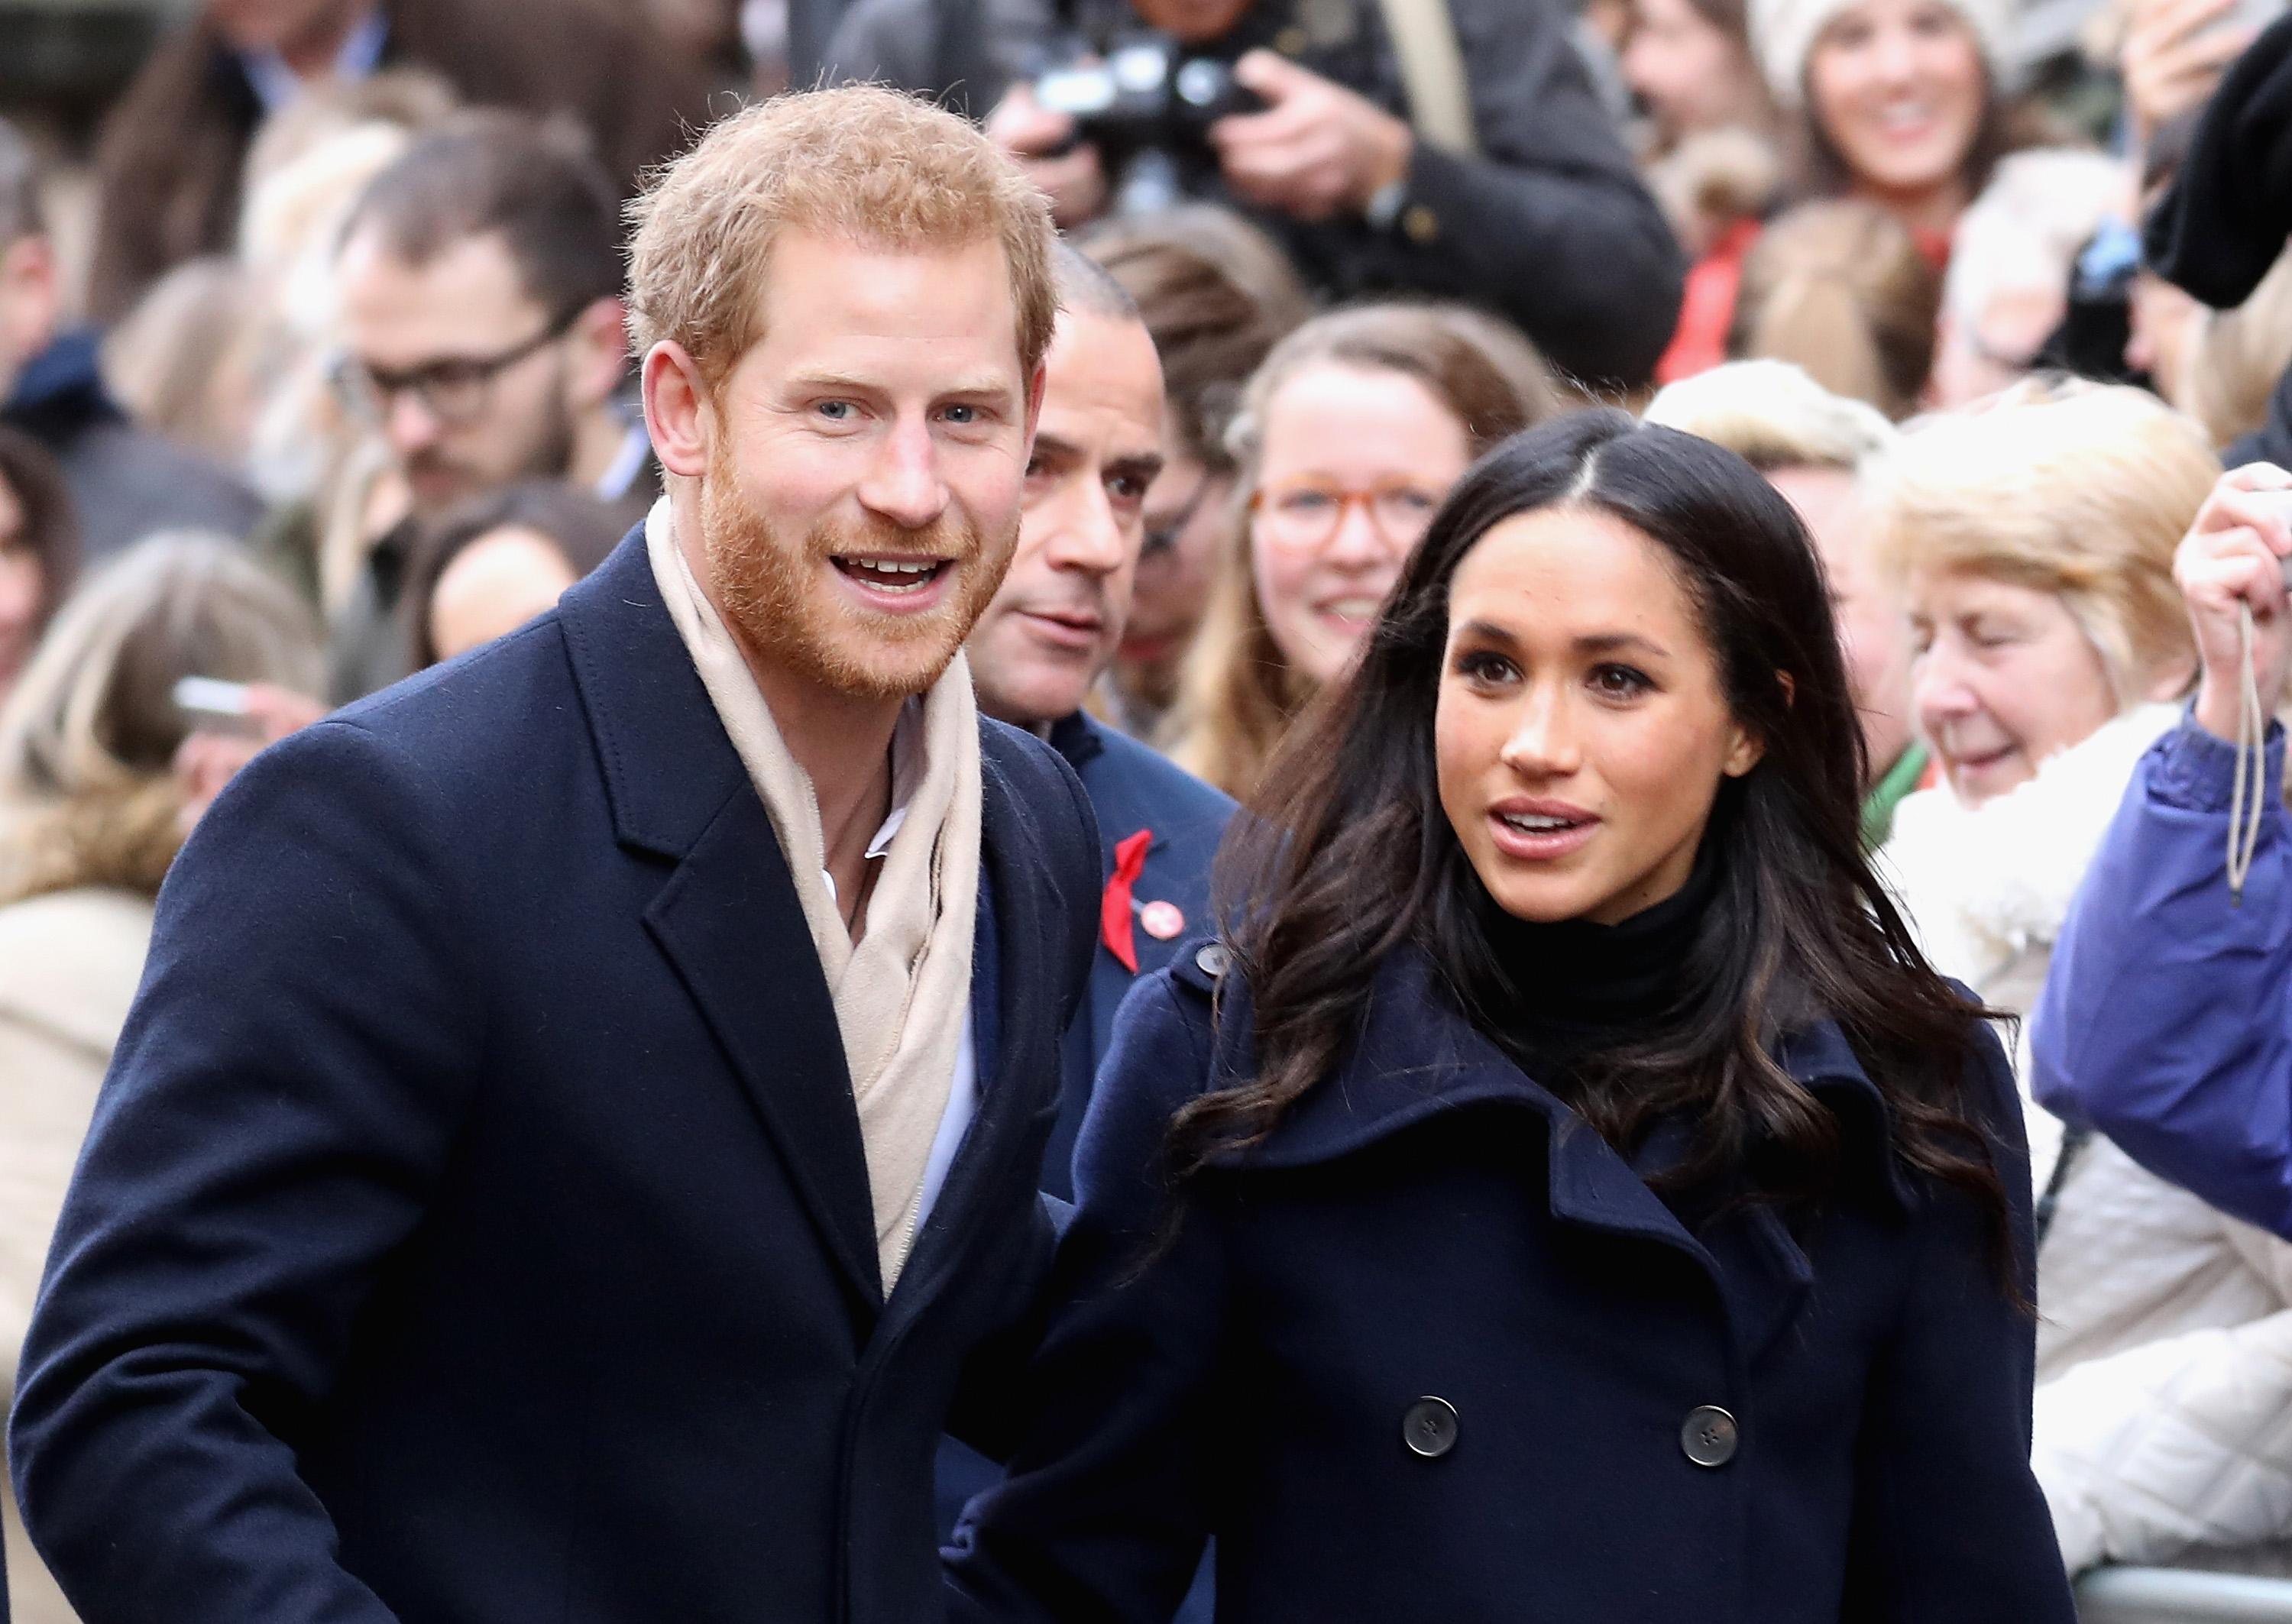 Meghan Markle Joins Prince Harry in Attending British Royal Family's Christmas Celebration